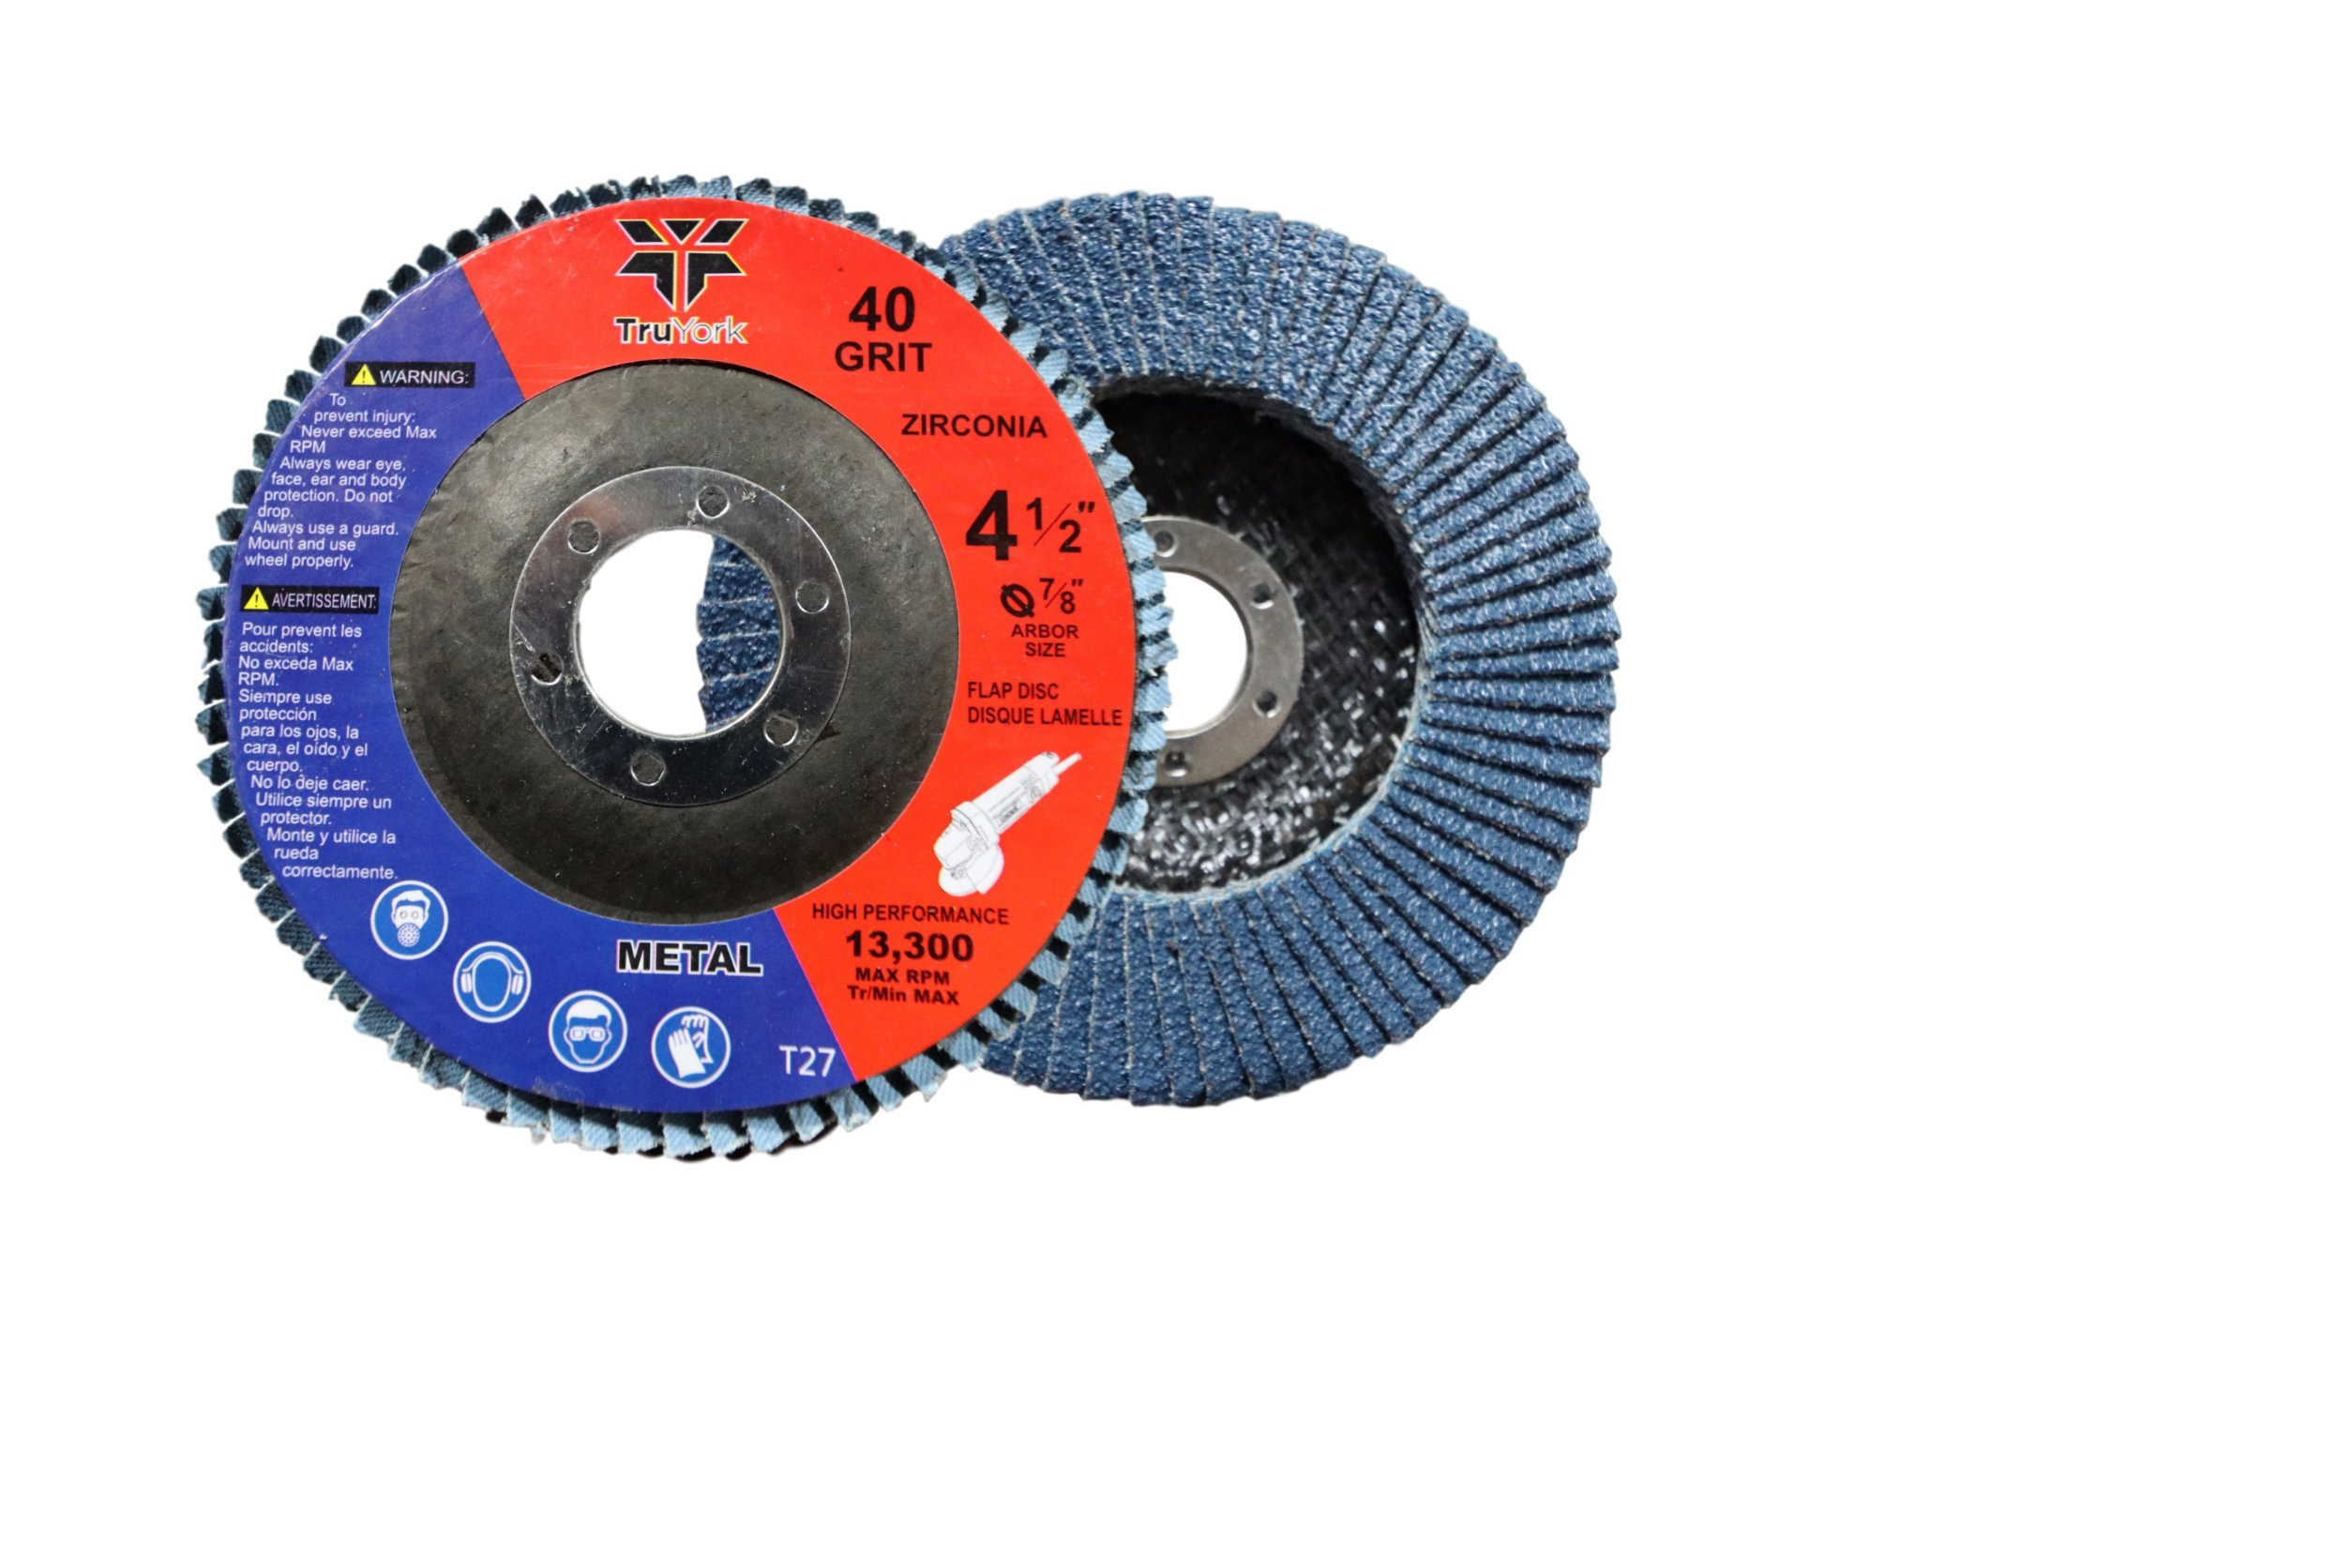 Sanding Discs - 4.5in Heavy Duty Zirconia Abrasive Grinding wheels, 10 Pack ( 40 grit 5pcs & 80 grit 5pcs ) For Angle Grinder, 7/8'' Arbor size Grinder wheel